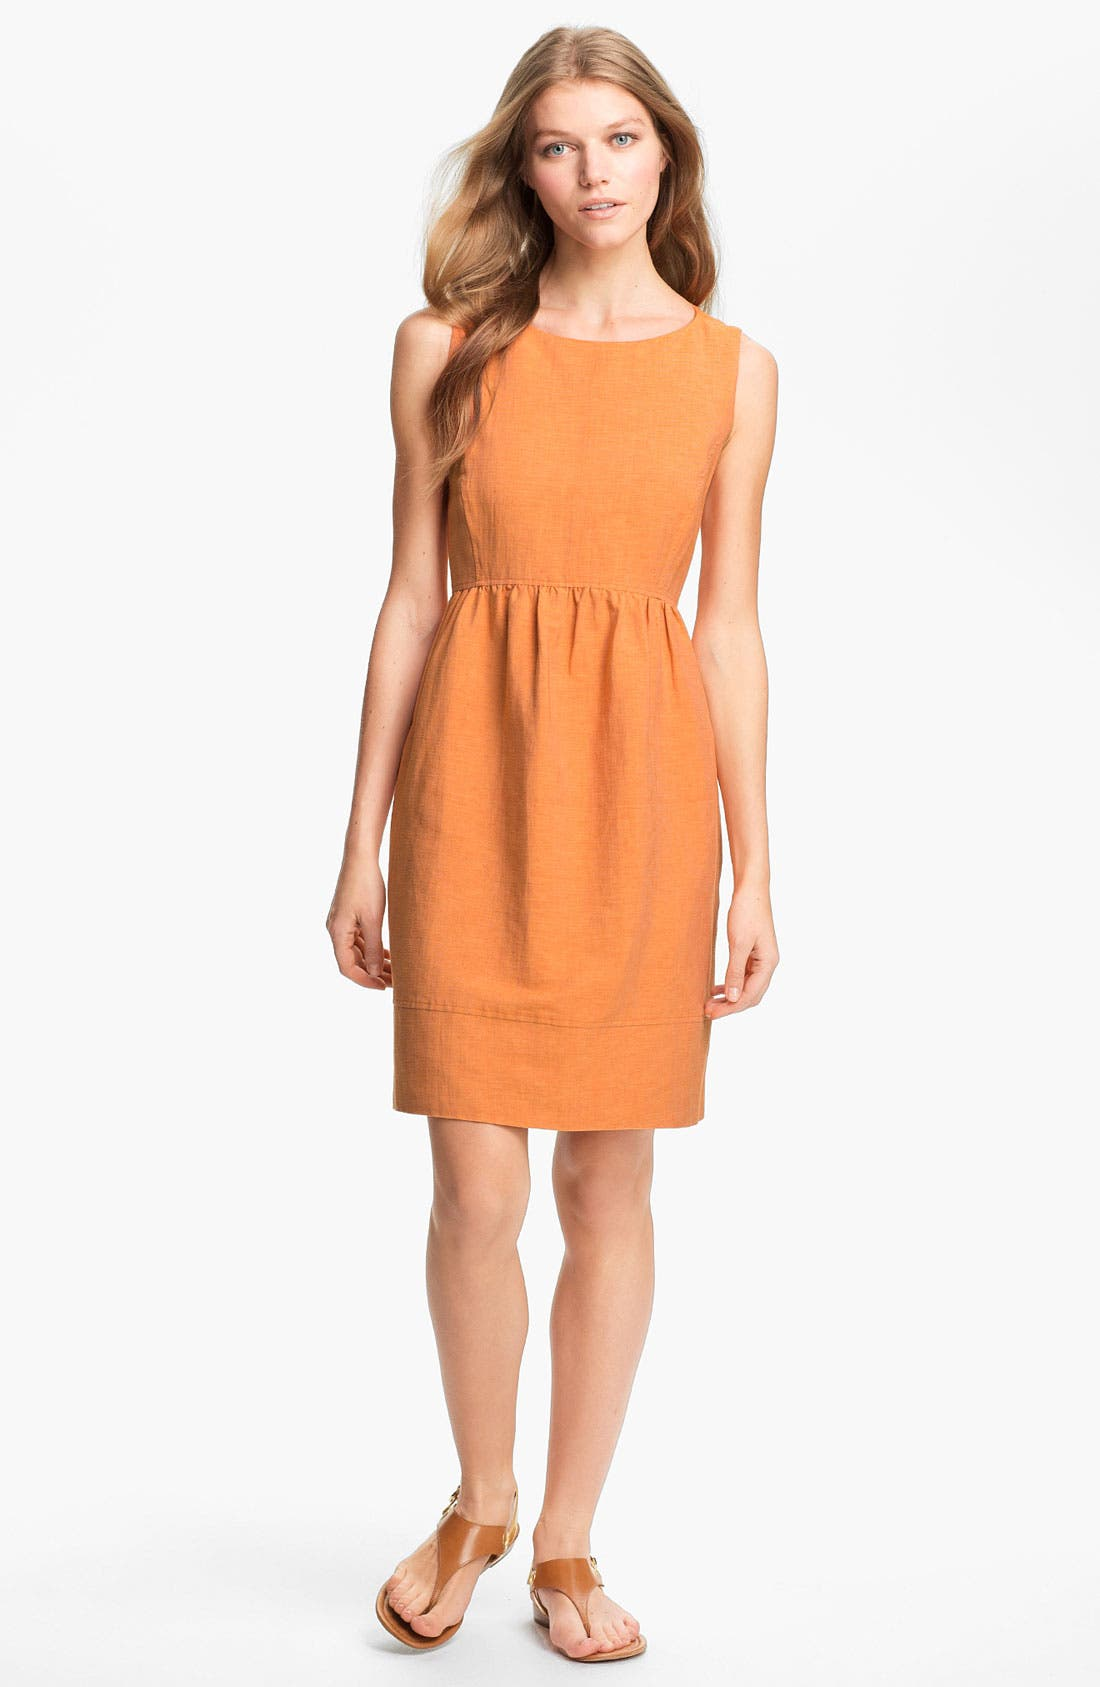 Alternate Image 1 Selected - Weekend Max Mara 'Hot' Sleeveless Dress